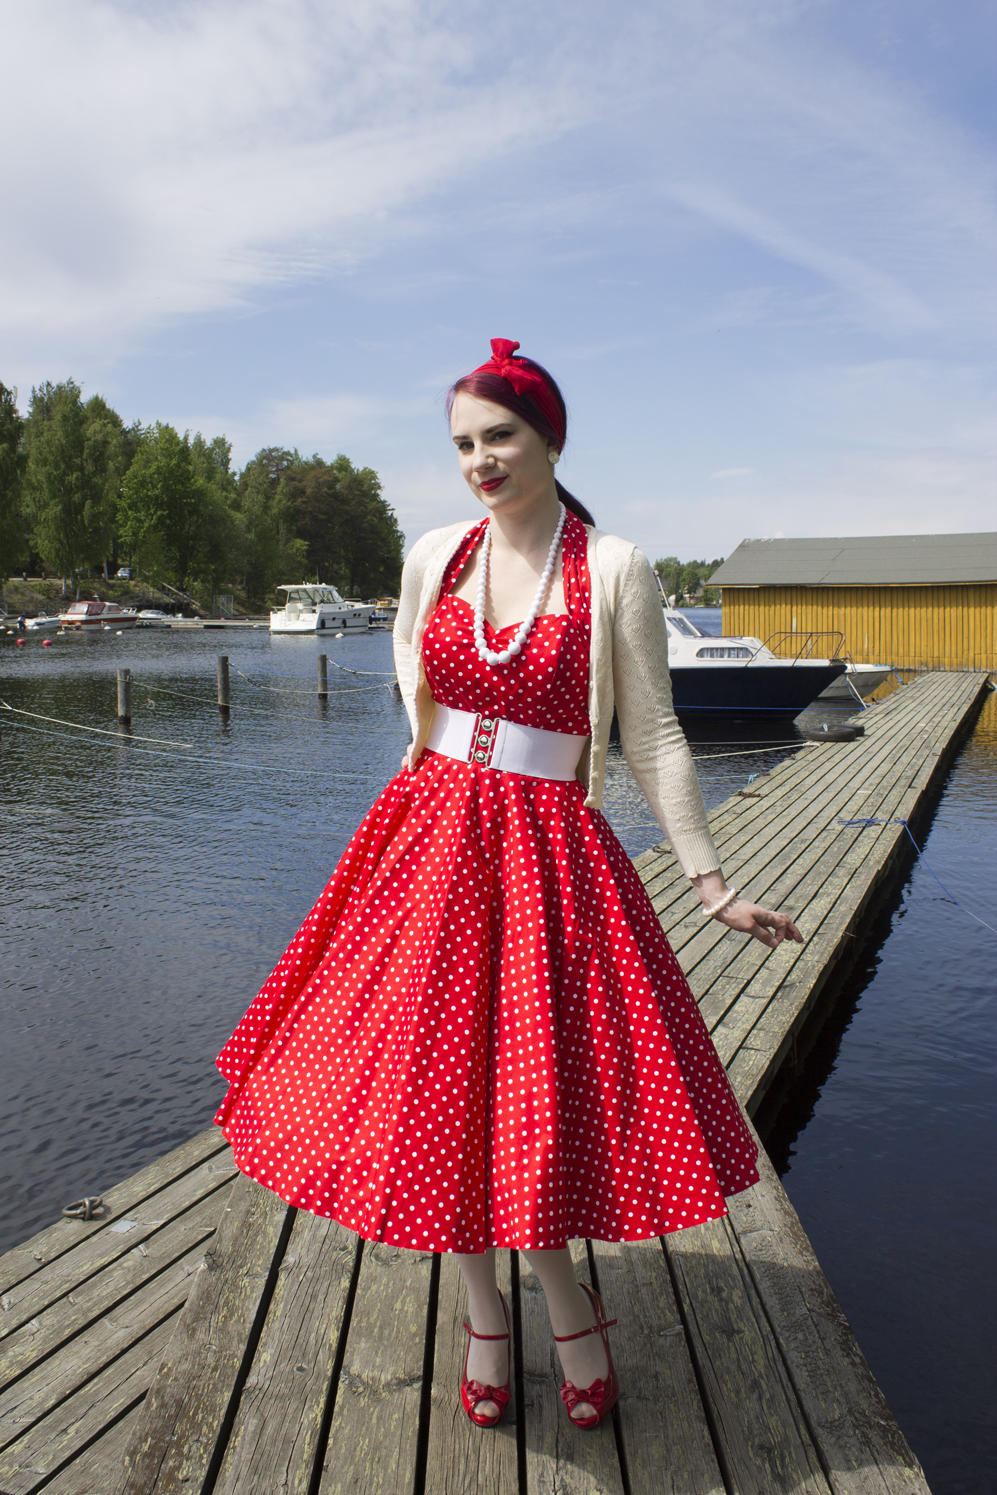 Dress  Vivien of Holloway Cardigan  King Louie Petticoats  Hell Bunny    Sams Shoes  Pinup Couture d0b75b094c